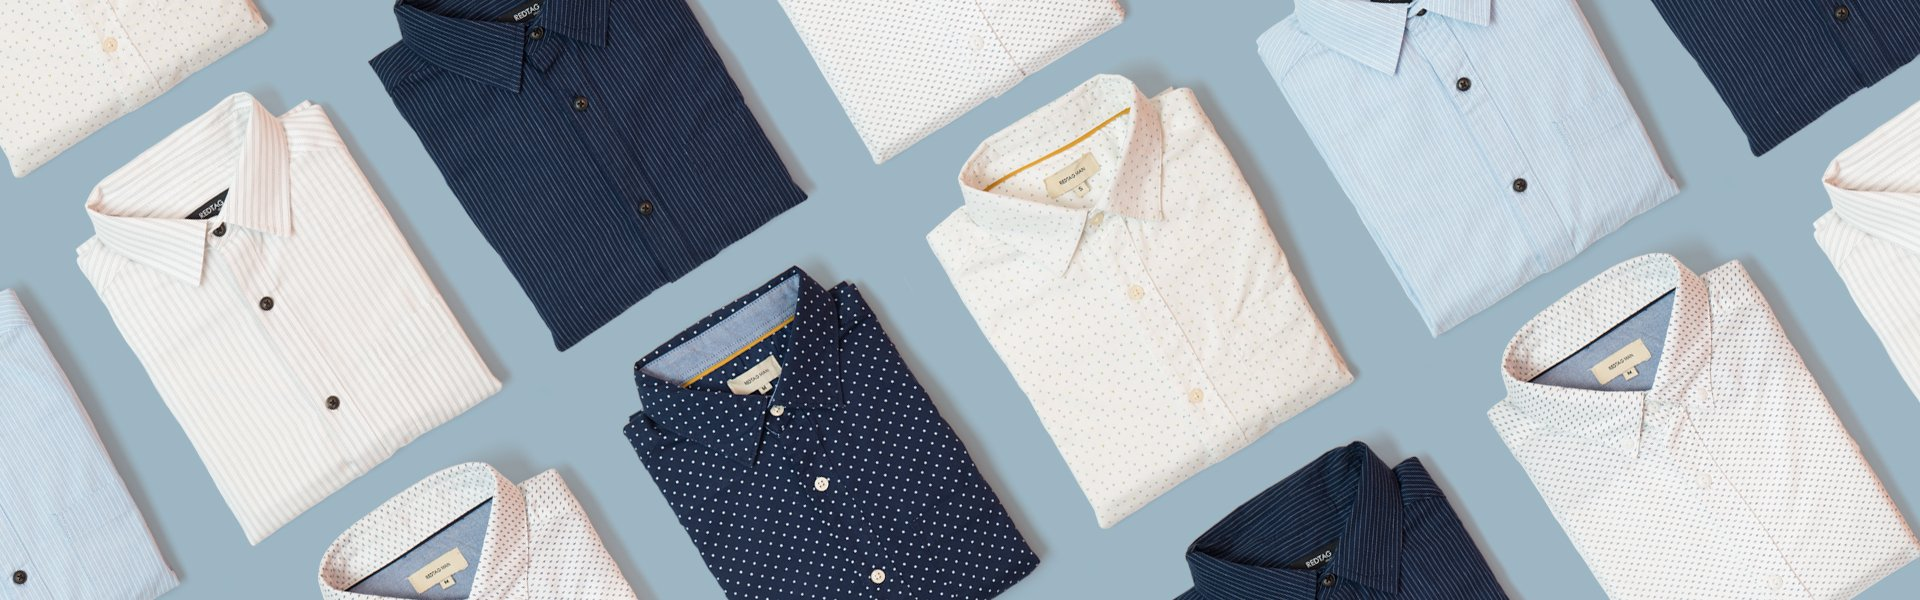 475efe5a REDTAG Menswear: An Inclusive Selection for All Men